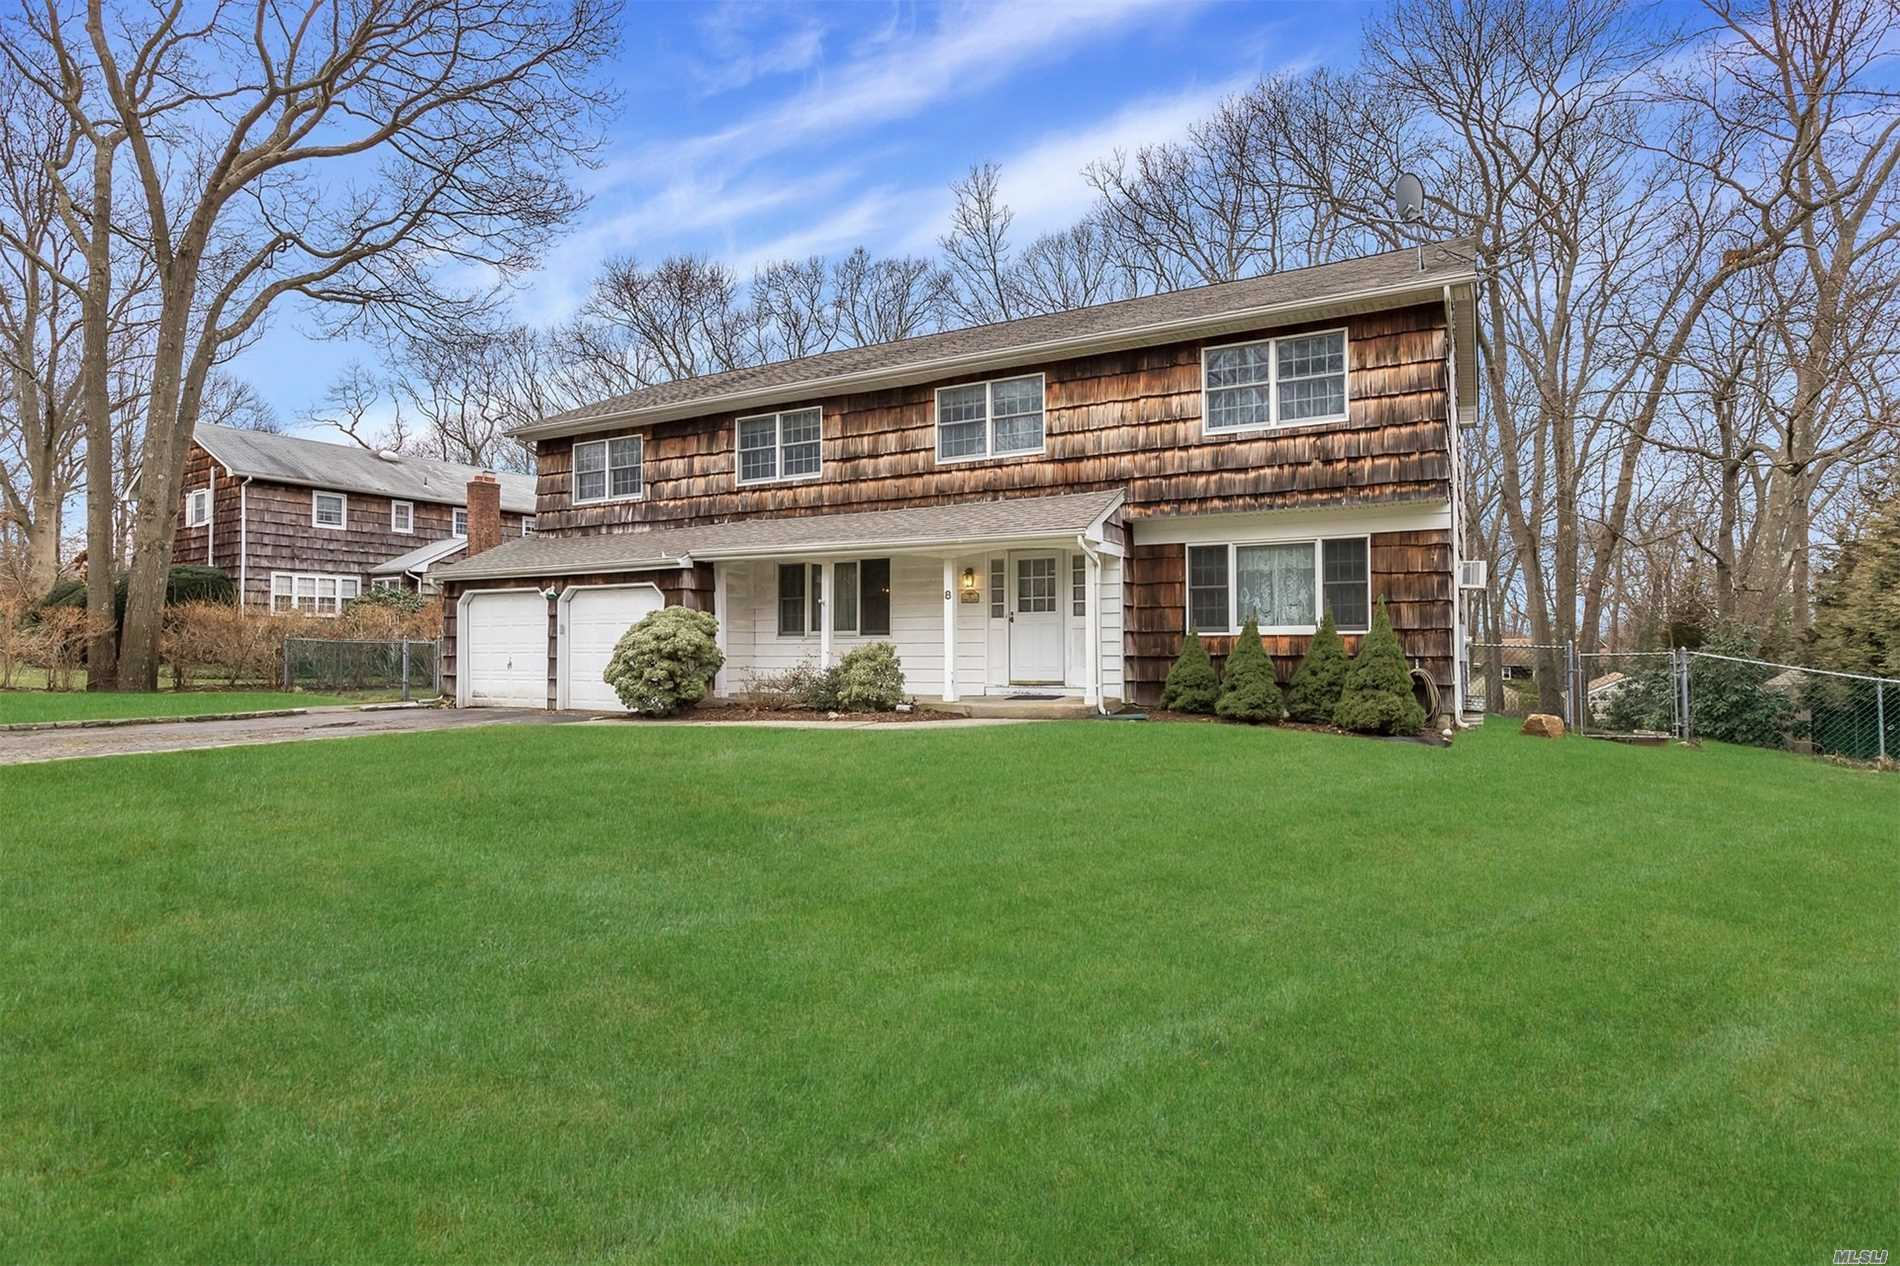 Spacious 5 Bedroom 3 Bath Center Hall Colonial Offers Gleaming Hardwood Floors, Den With Brick Fireplace, Huge Formal Dining Room, Master Bedroom With Private Bath. Full Finished Basement, 2 Car Garage, Tranquil Backyard With New Patio & Fire Pit. Located In 3 Village School District.